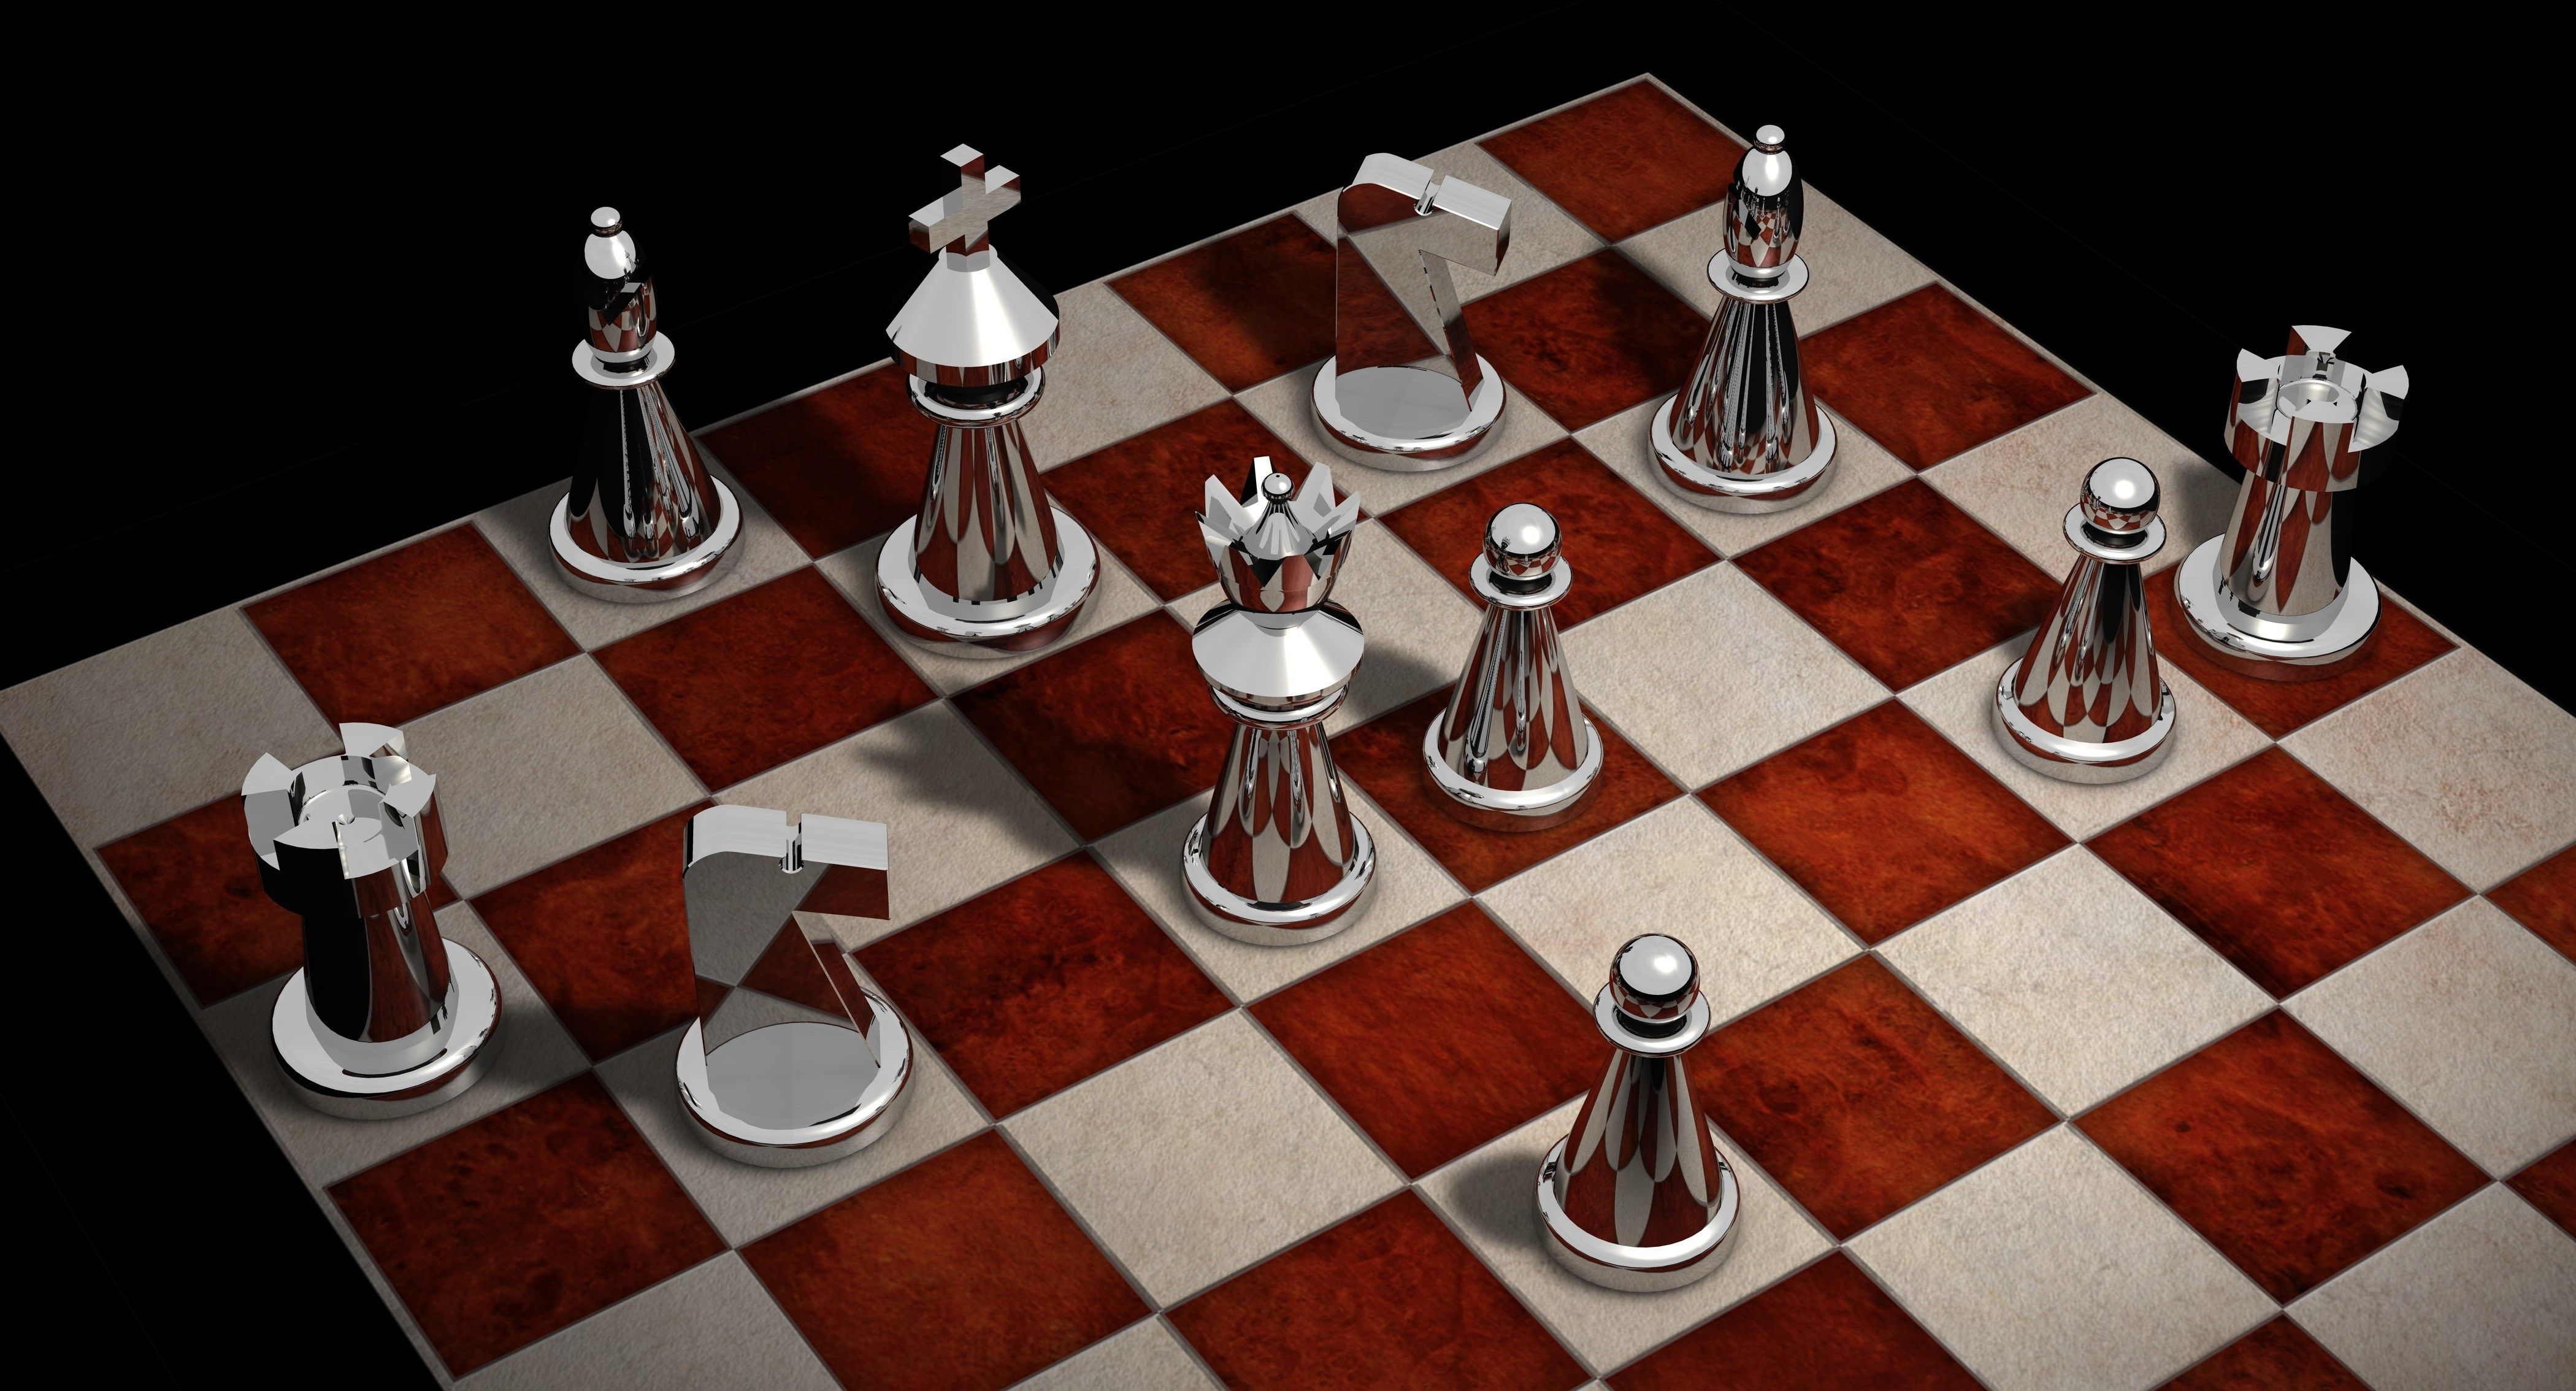 4200x2268 px free wallpaper and screensavers for chess by warden 4200x2268 px free wallpaper and screensavers for chess by warden smith for pocketfullofgrace voltagebd Gallery